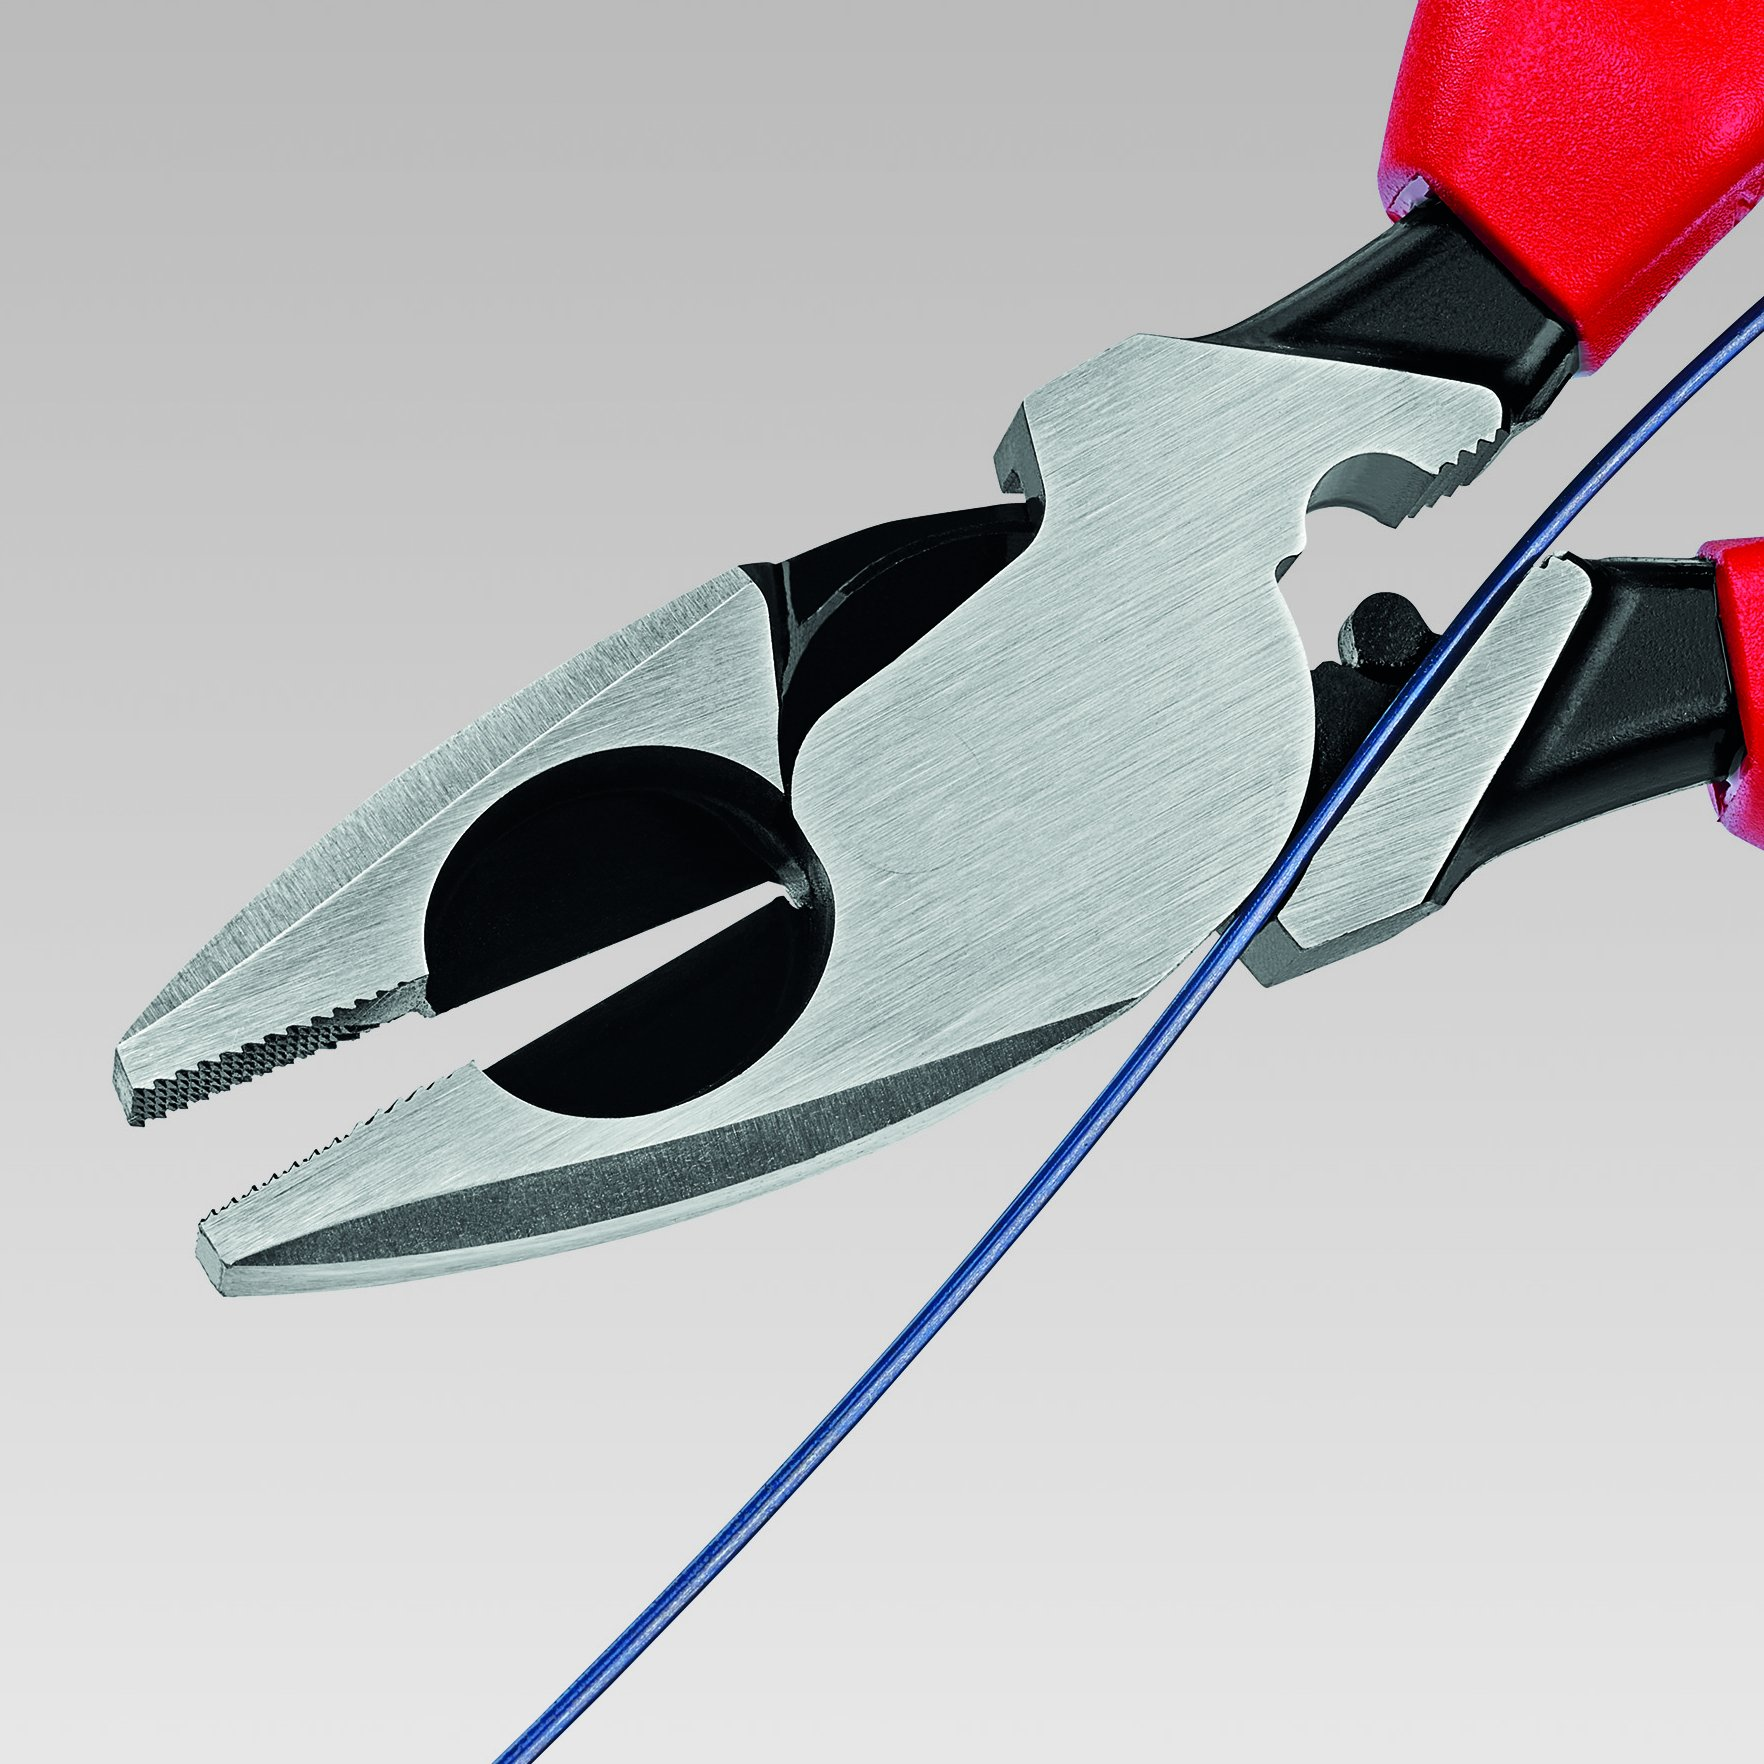 Knipex 09 11 240 9.5-Inch Ultra-High Leverage Lineman's Pliers with Fish Tape Puller and Crimper by KNIPEX Tools (Image #2)